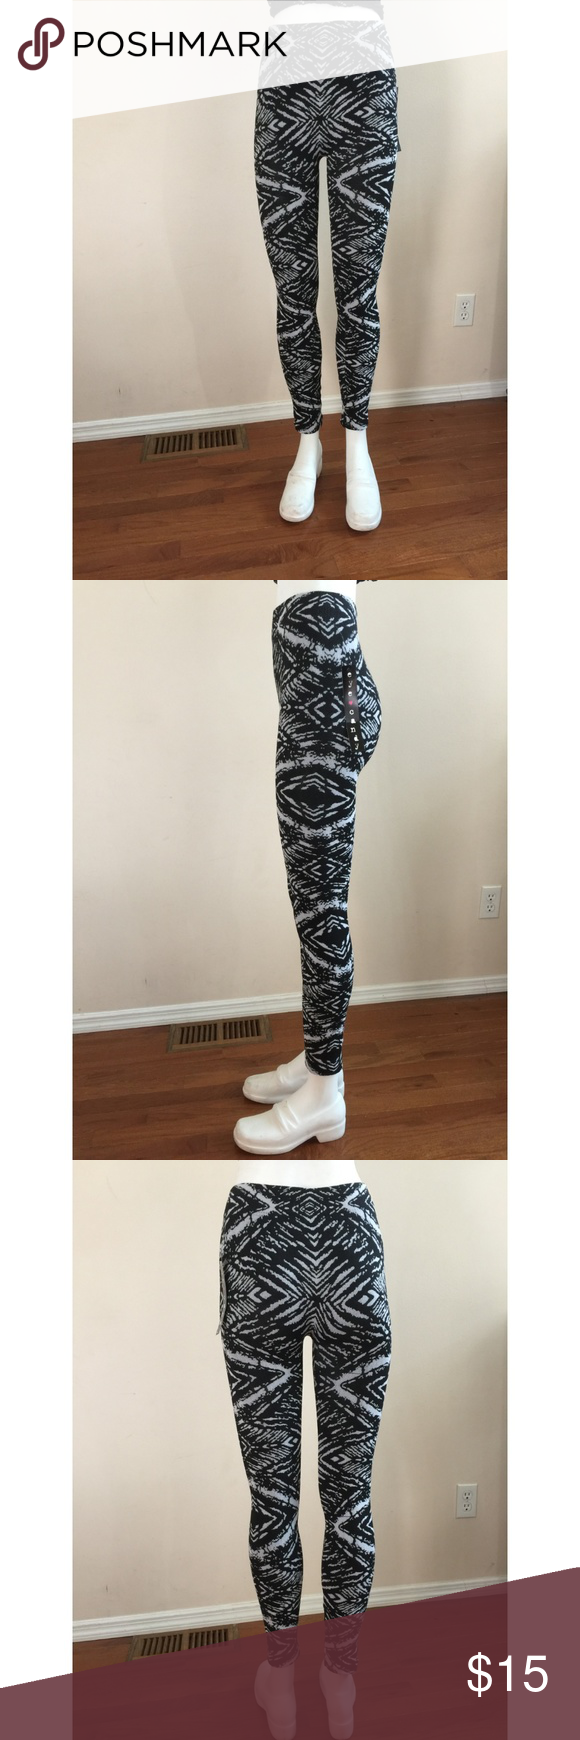 6b73dd7aad213b Eye Candy JR Plus Leggings Black & White Size S/M 92% Polyester, 8%  spandex. eye candy Pants Leggings